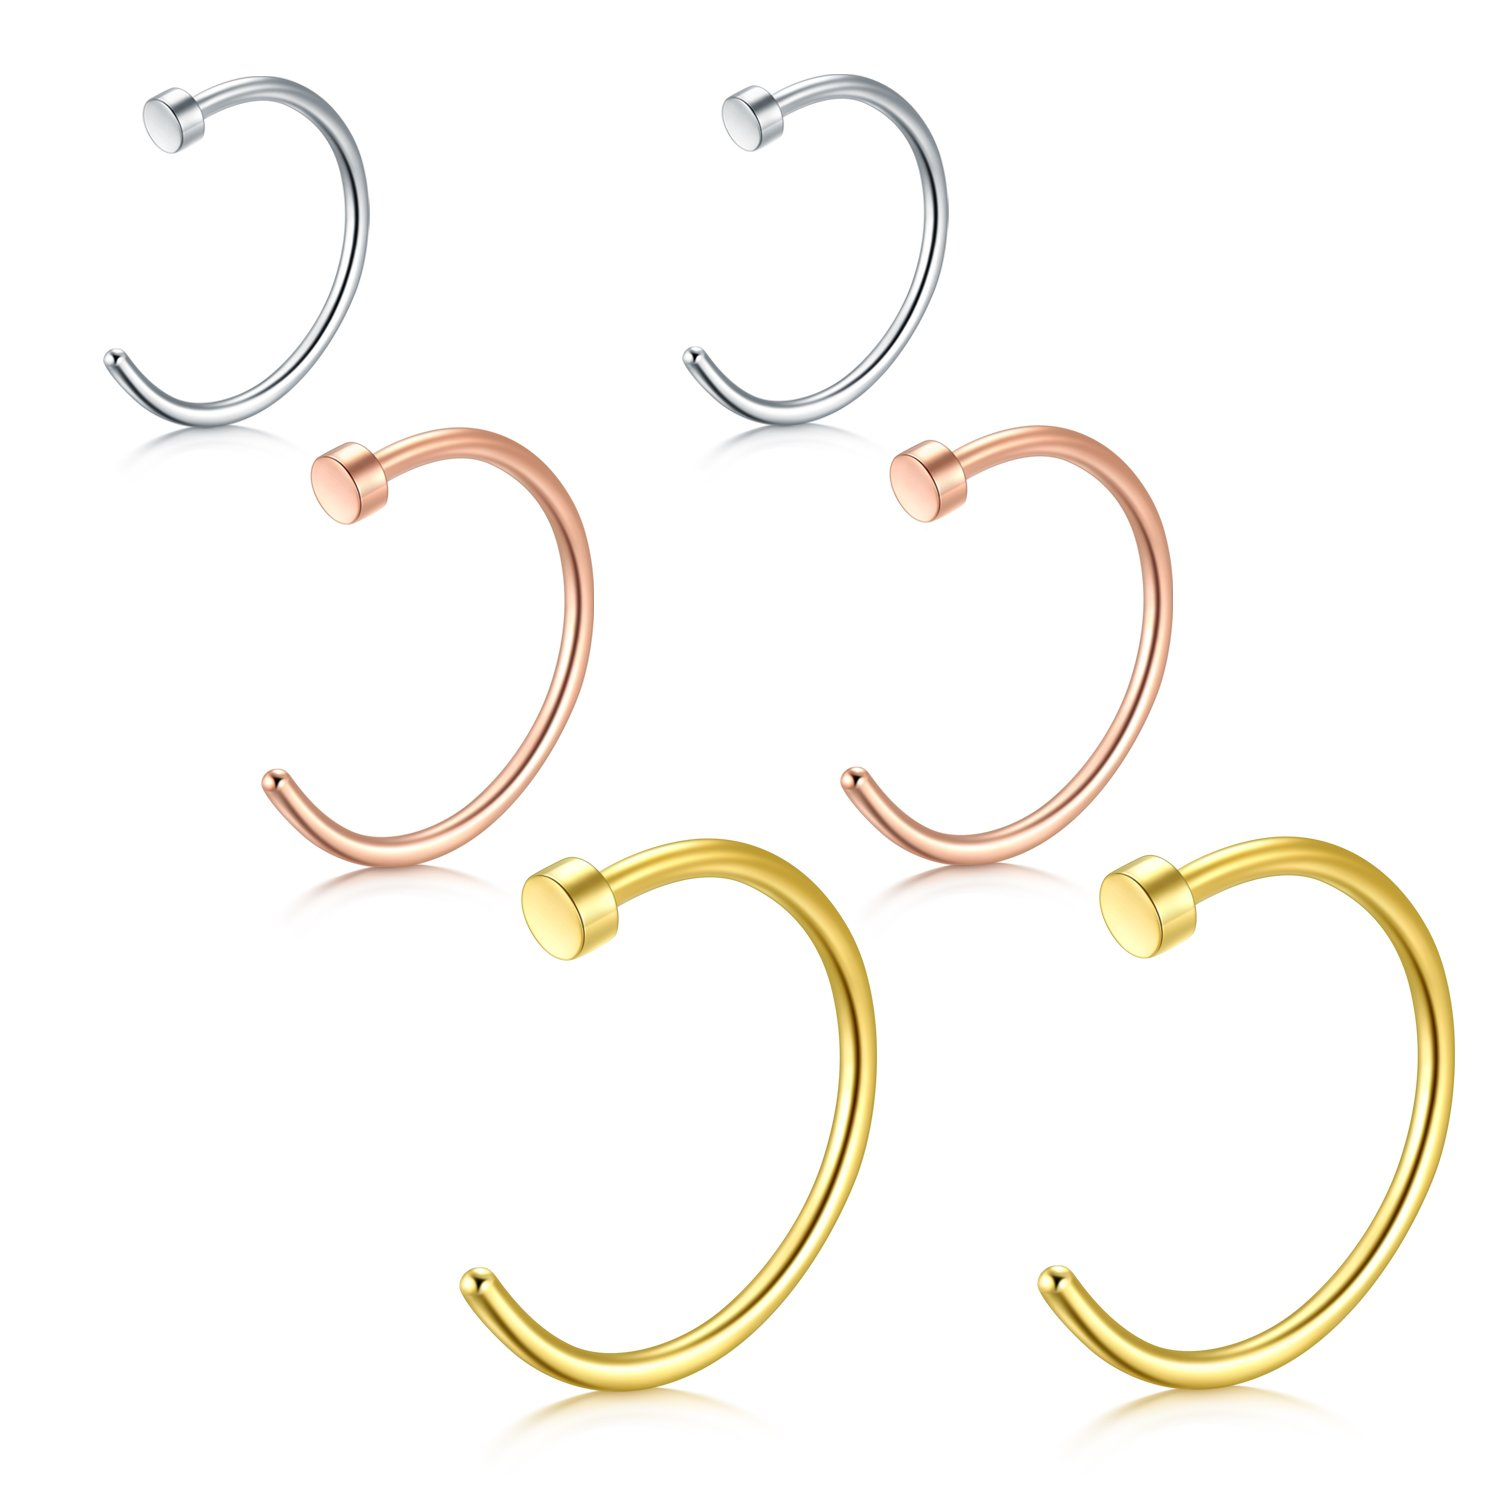 vcmart Nose Rings Hoop Ear Helix Cartilage Tragus Earrings C Shape 18G Stainless Steel Lip Rings Piercing Jewelry 3prs 5/16'-3/8'-1/2' LBHD1876S